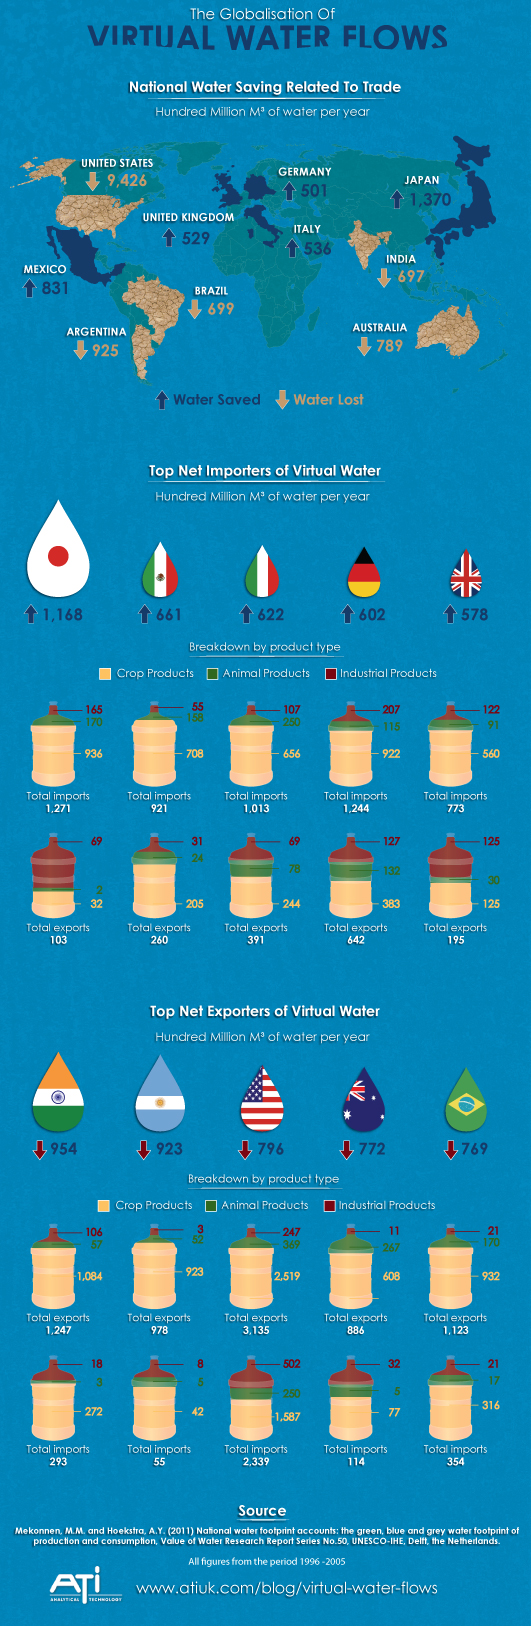 Infographic Showing The Globalisation of Virtual Water Flows